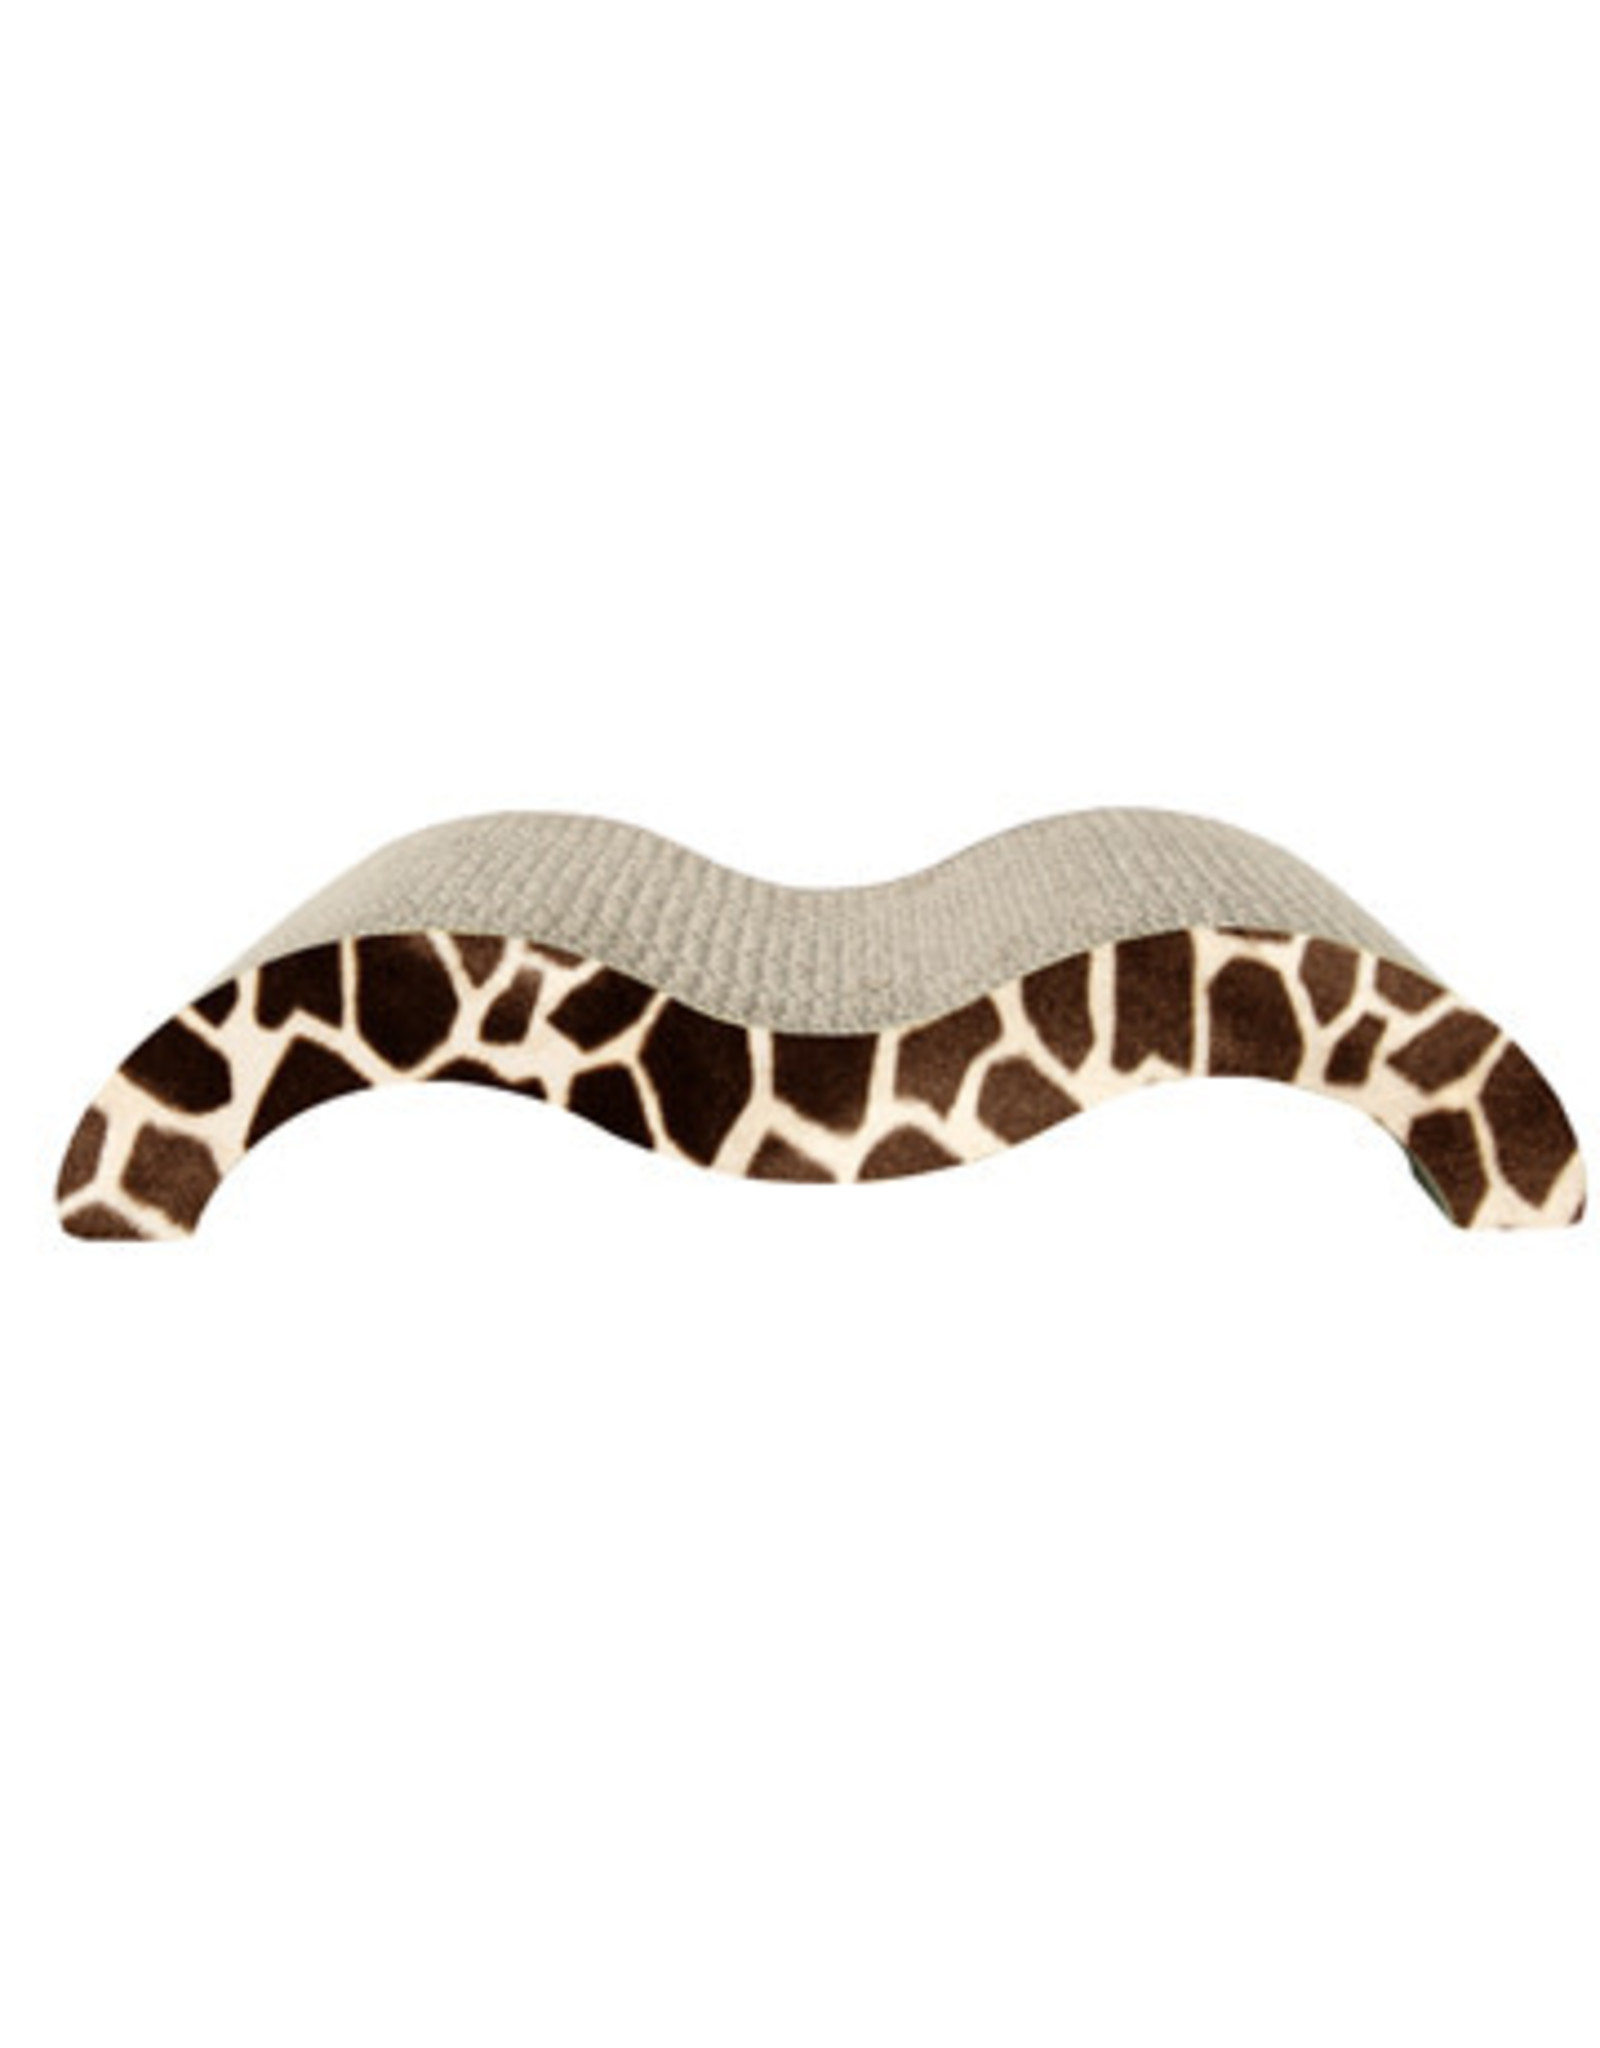 Cat Love Giraffe Scratcher with Catnip 45x22x9cm